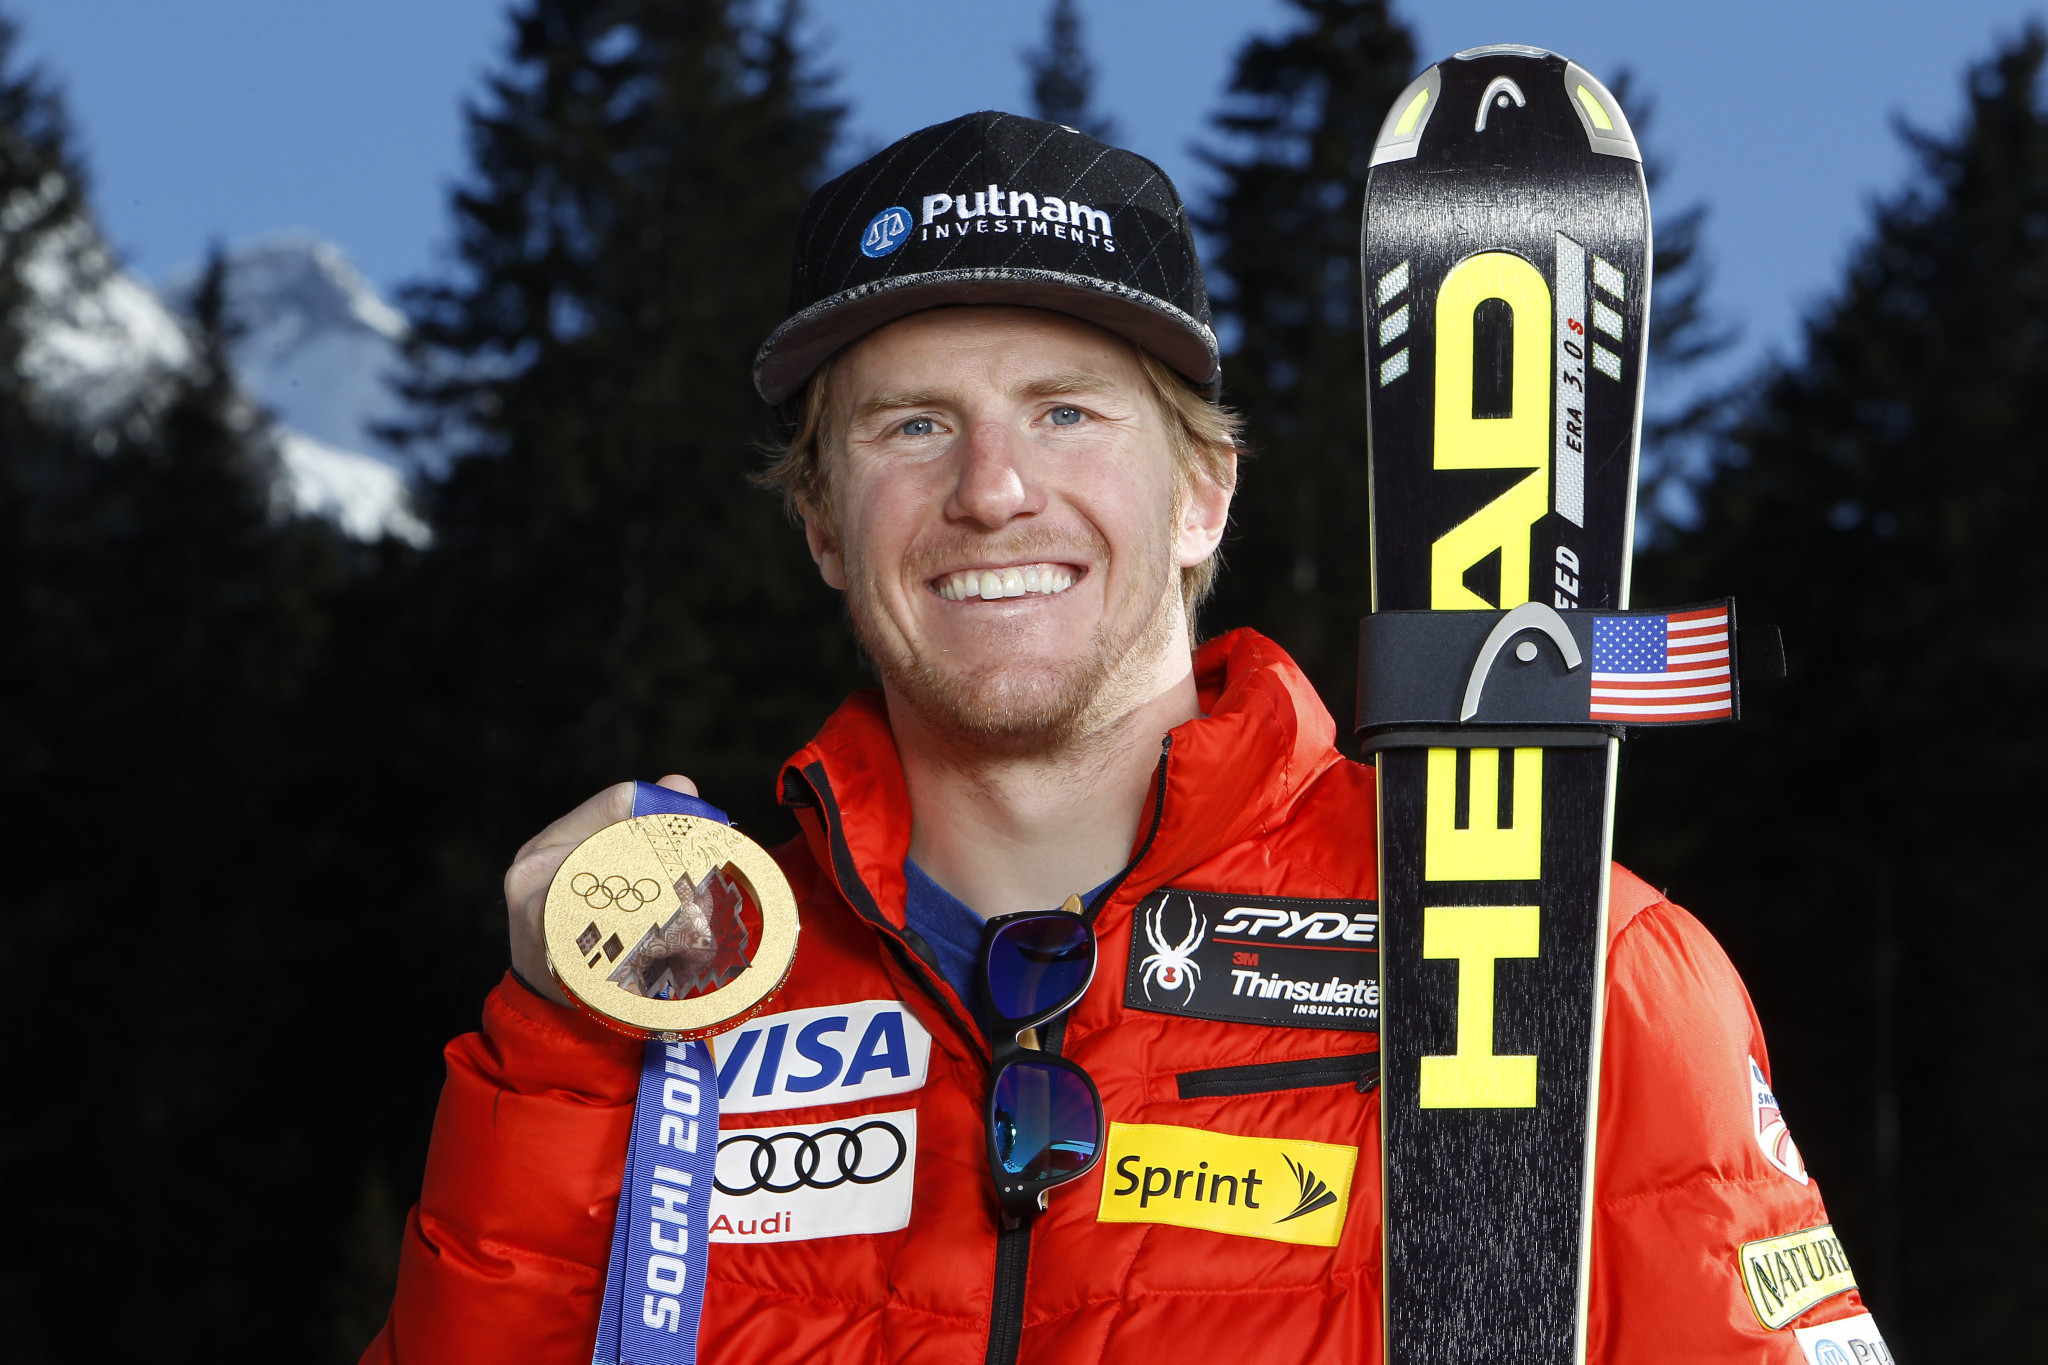 Ted Ligety won his second Olympic gold at Sochi 2014 ©Getty Images